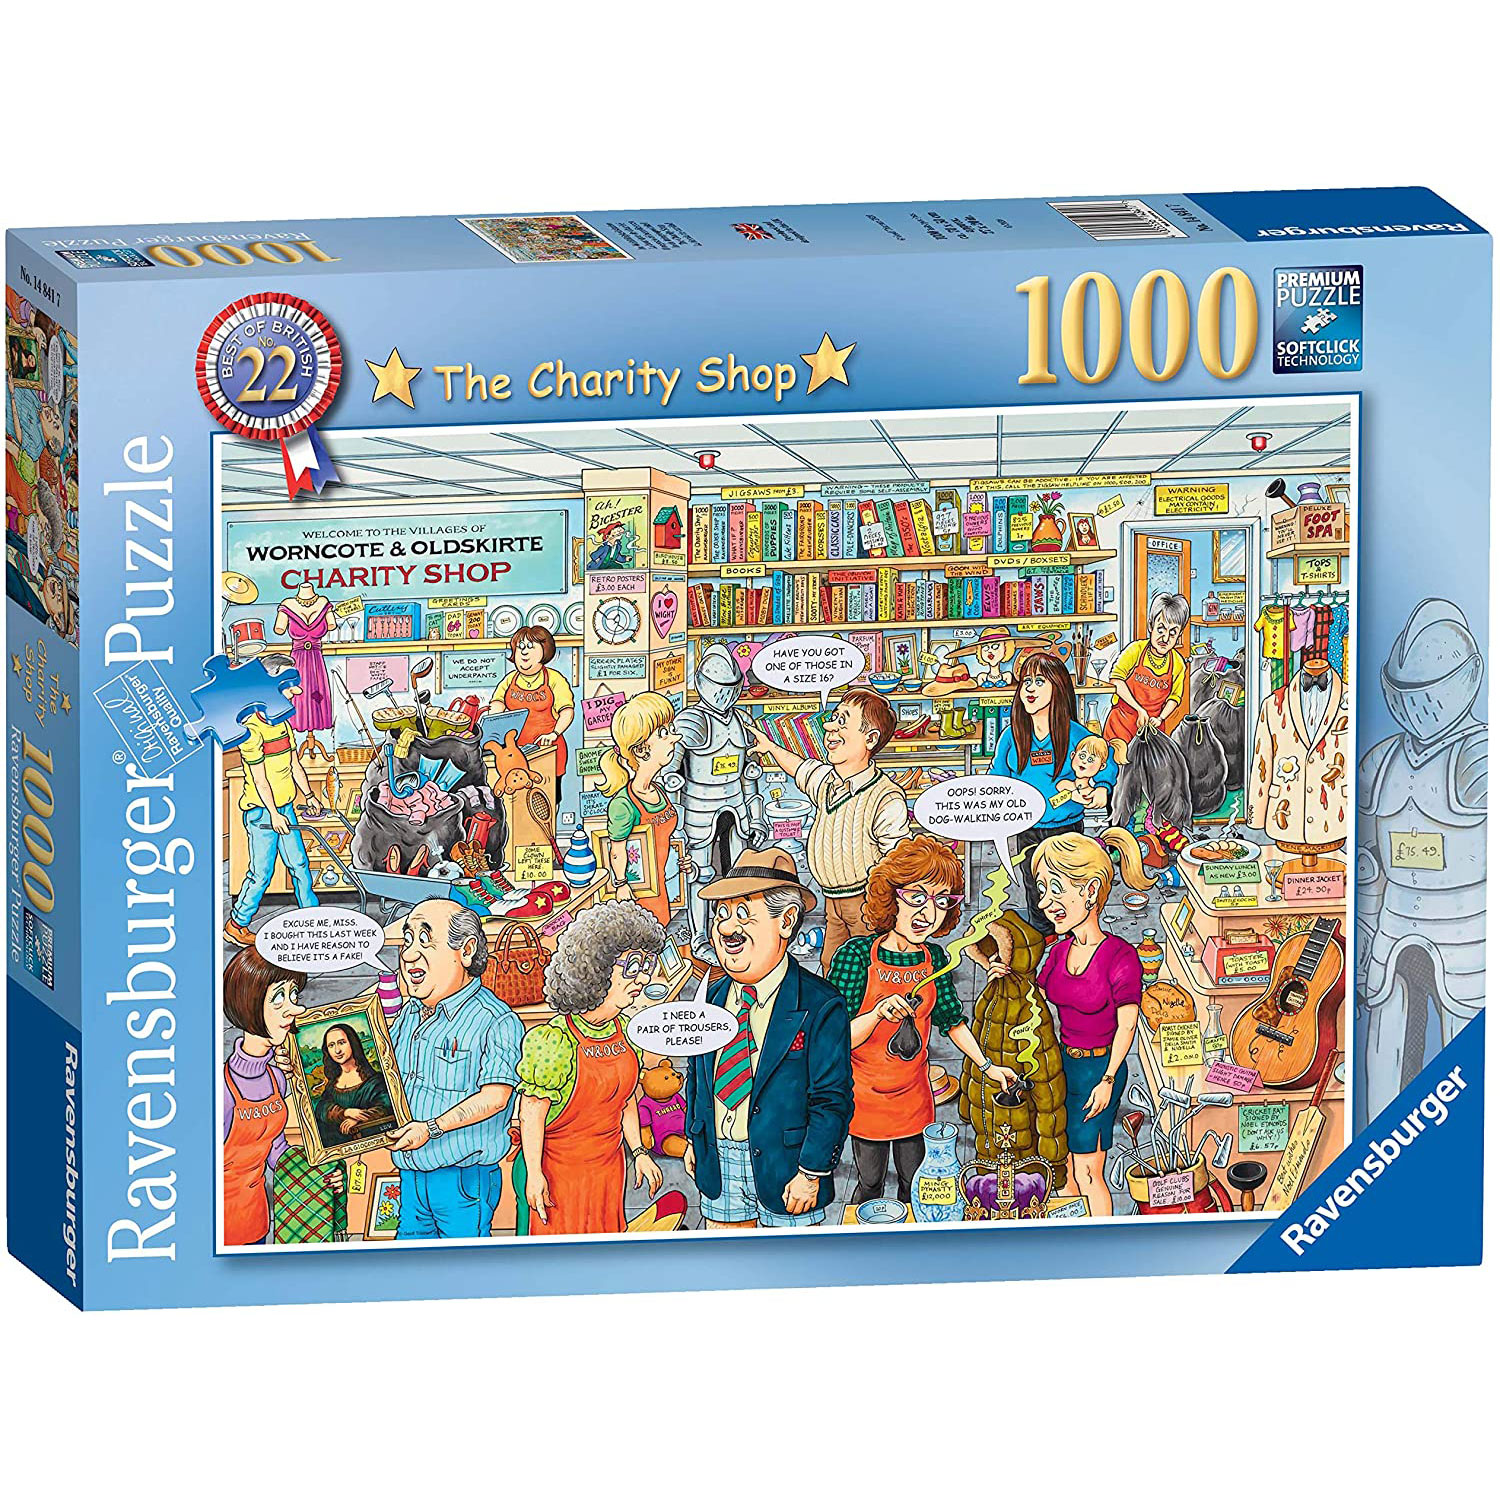 Ravensburger: Best of British No.22 - The Charity Shop 1000 Piece Puzzle